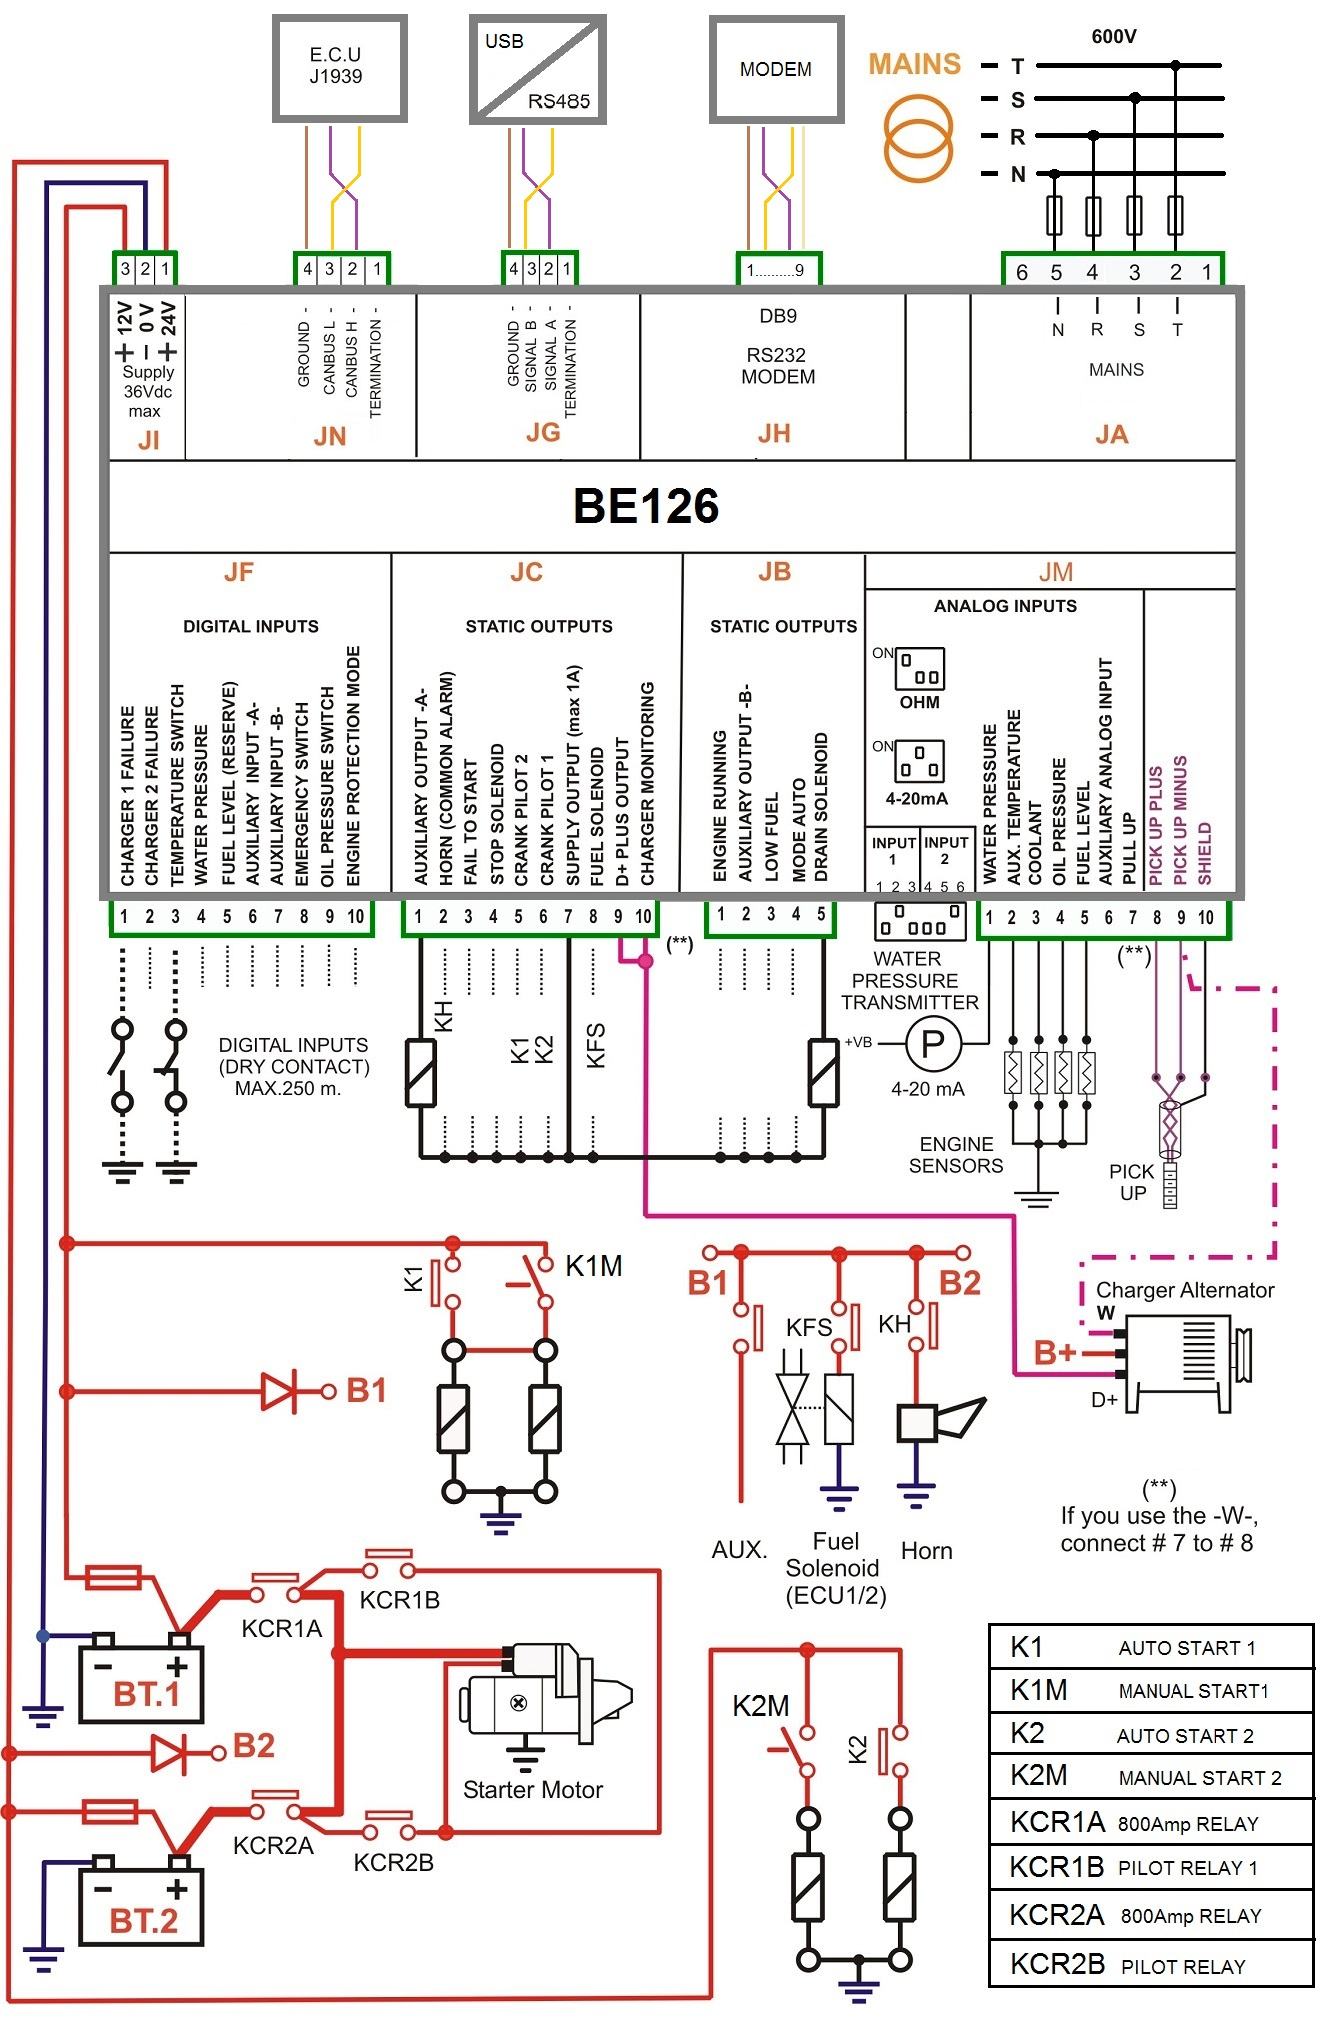 NFPA20 fire pump controller wiring diagram fire pump wiring diagram fire pump electrical requirements \u2022 free master control switch wiring diagram at bakdesigns.co